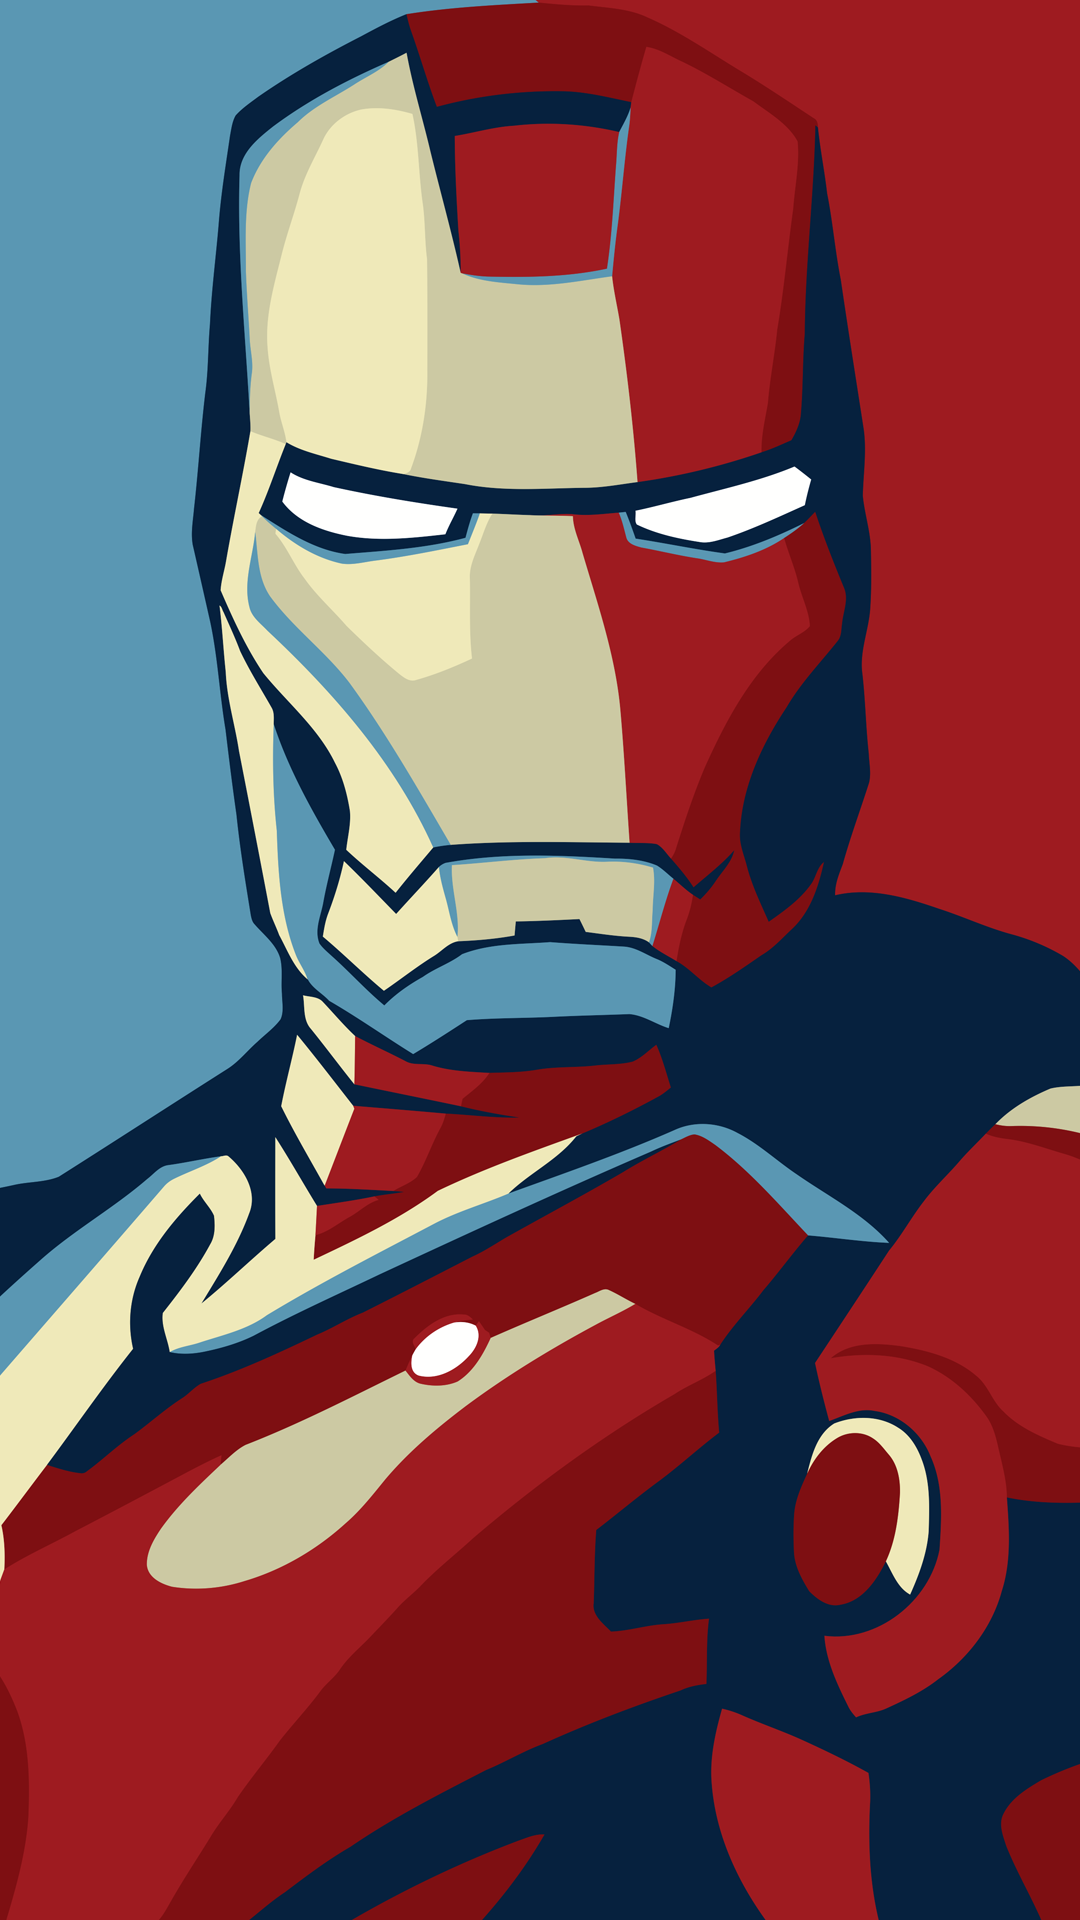 cool-iron-man-fond-d-%C3%A9cran-iphone-mobile-android-Check-more-at-http-all-images-net-iron-man-f-wallpaper-wp3004559